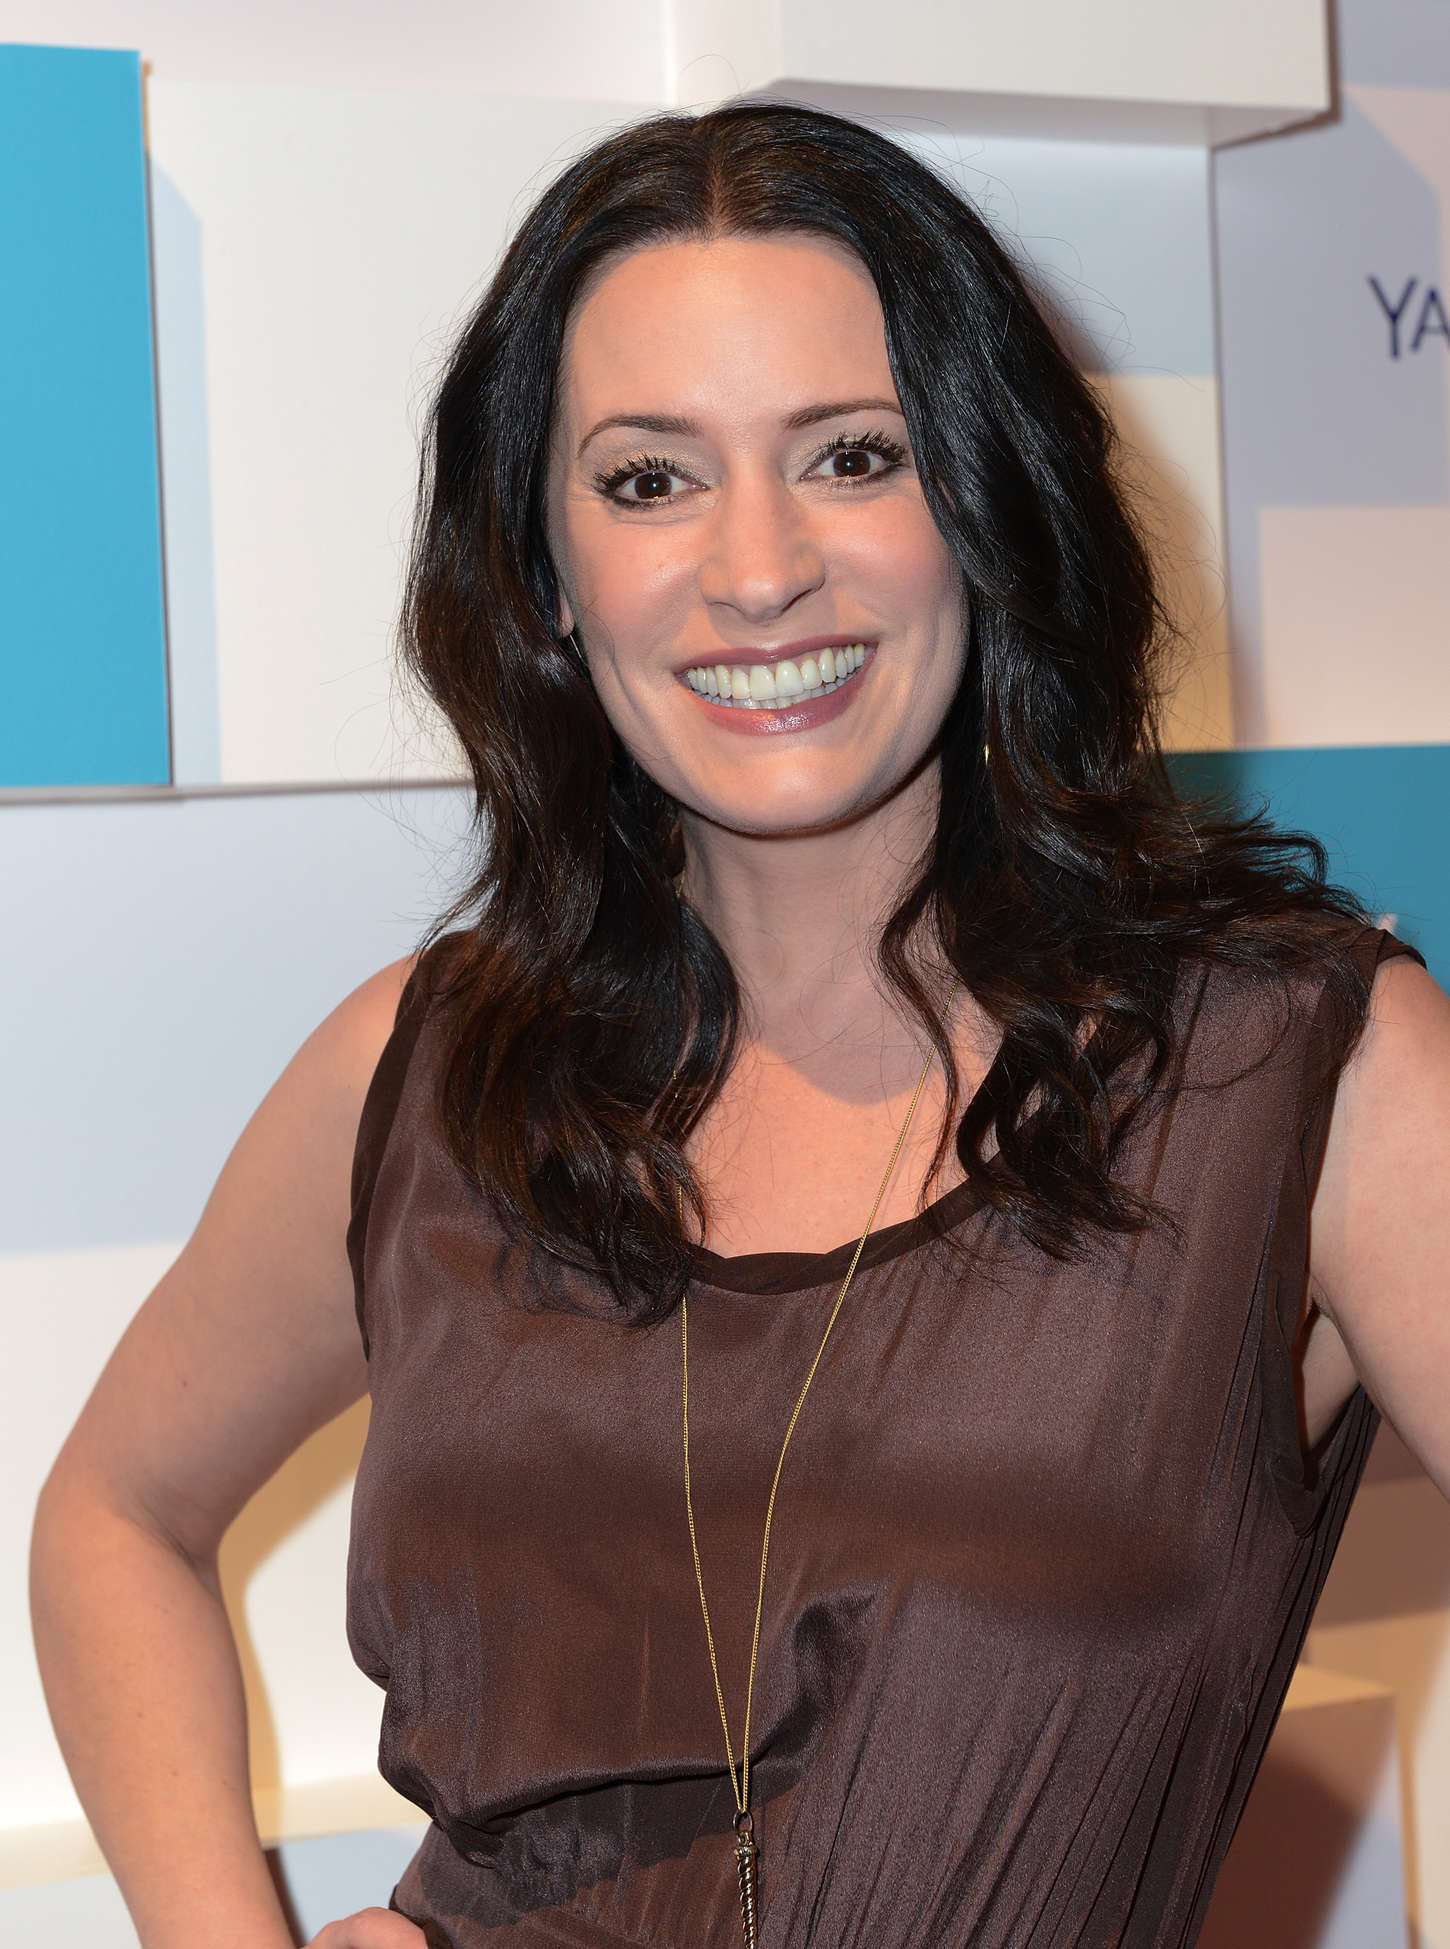 Paget Brewster Yahoos Community Greendale School Dance at SXSW in Austin